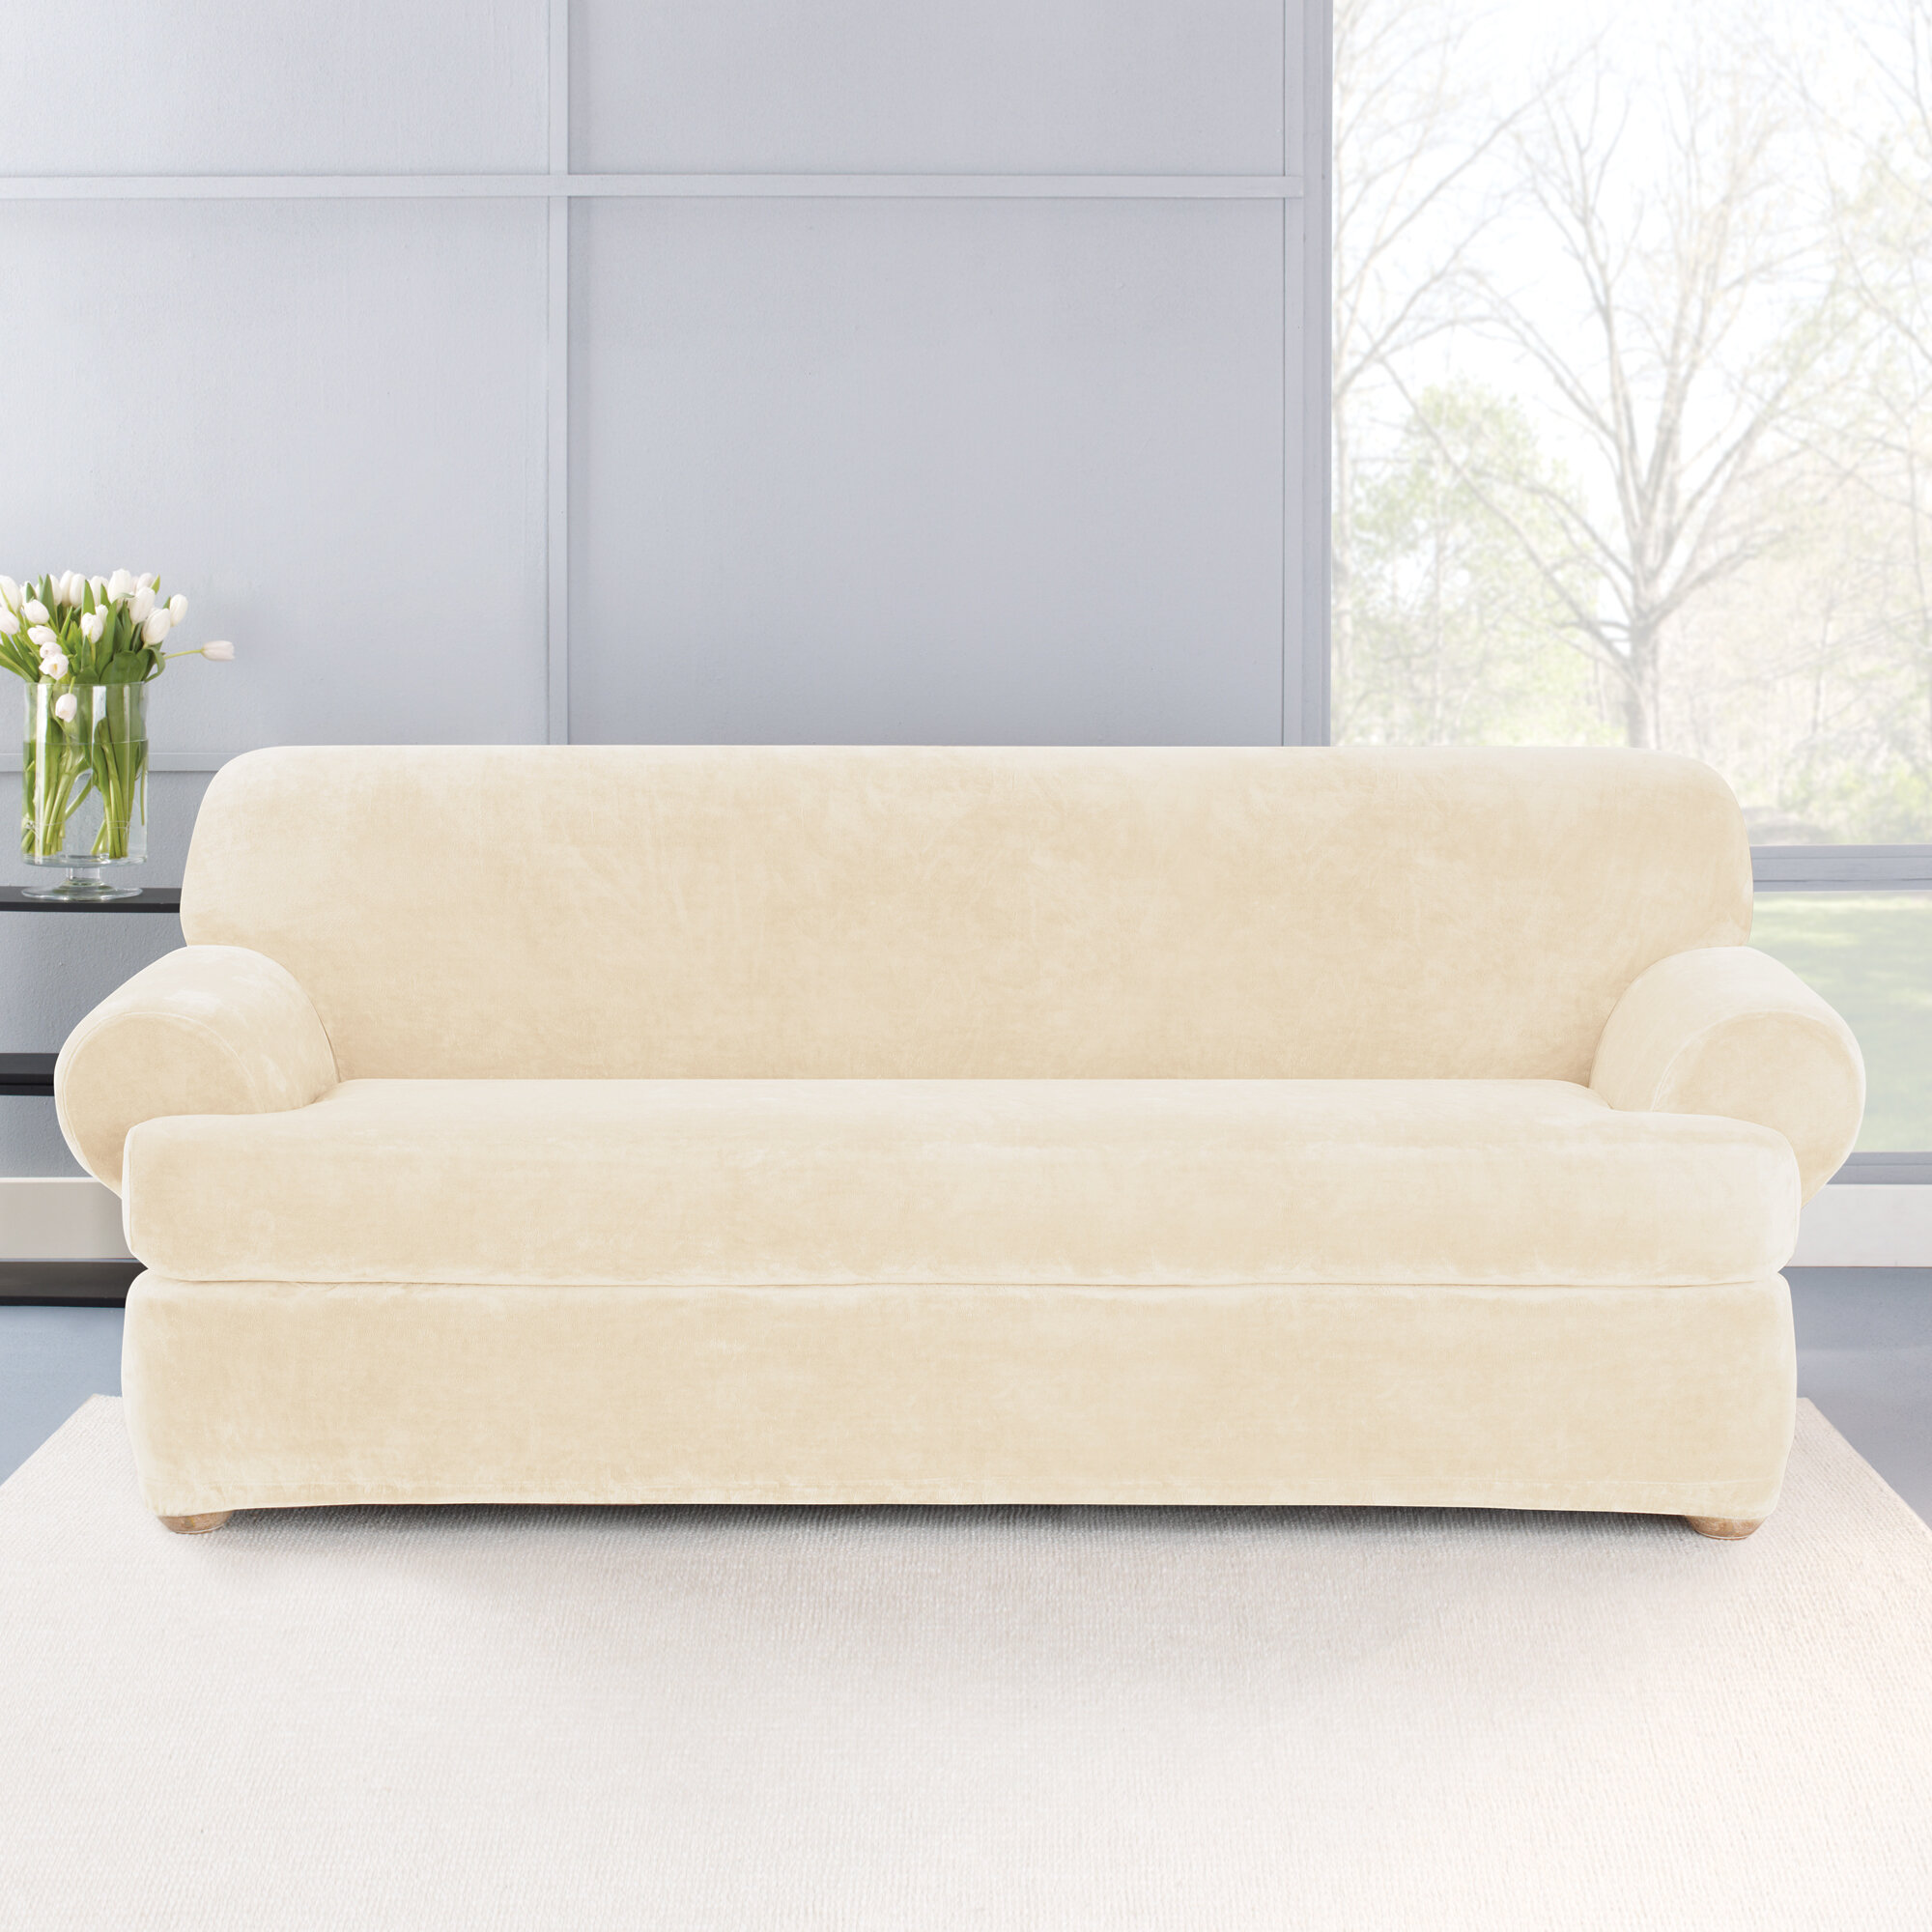 Stretch Plush 2 Piece T-Cushion Sofa Slipcover Set